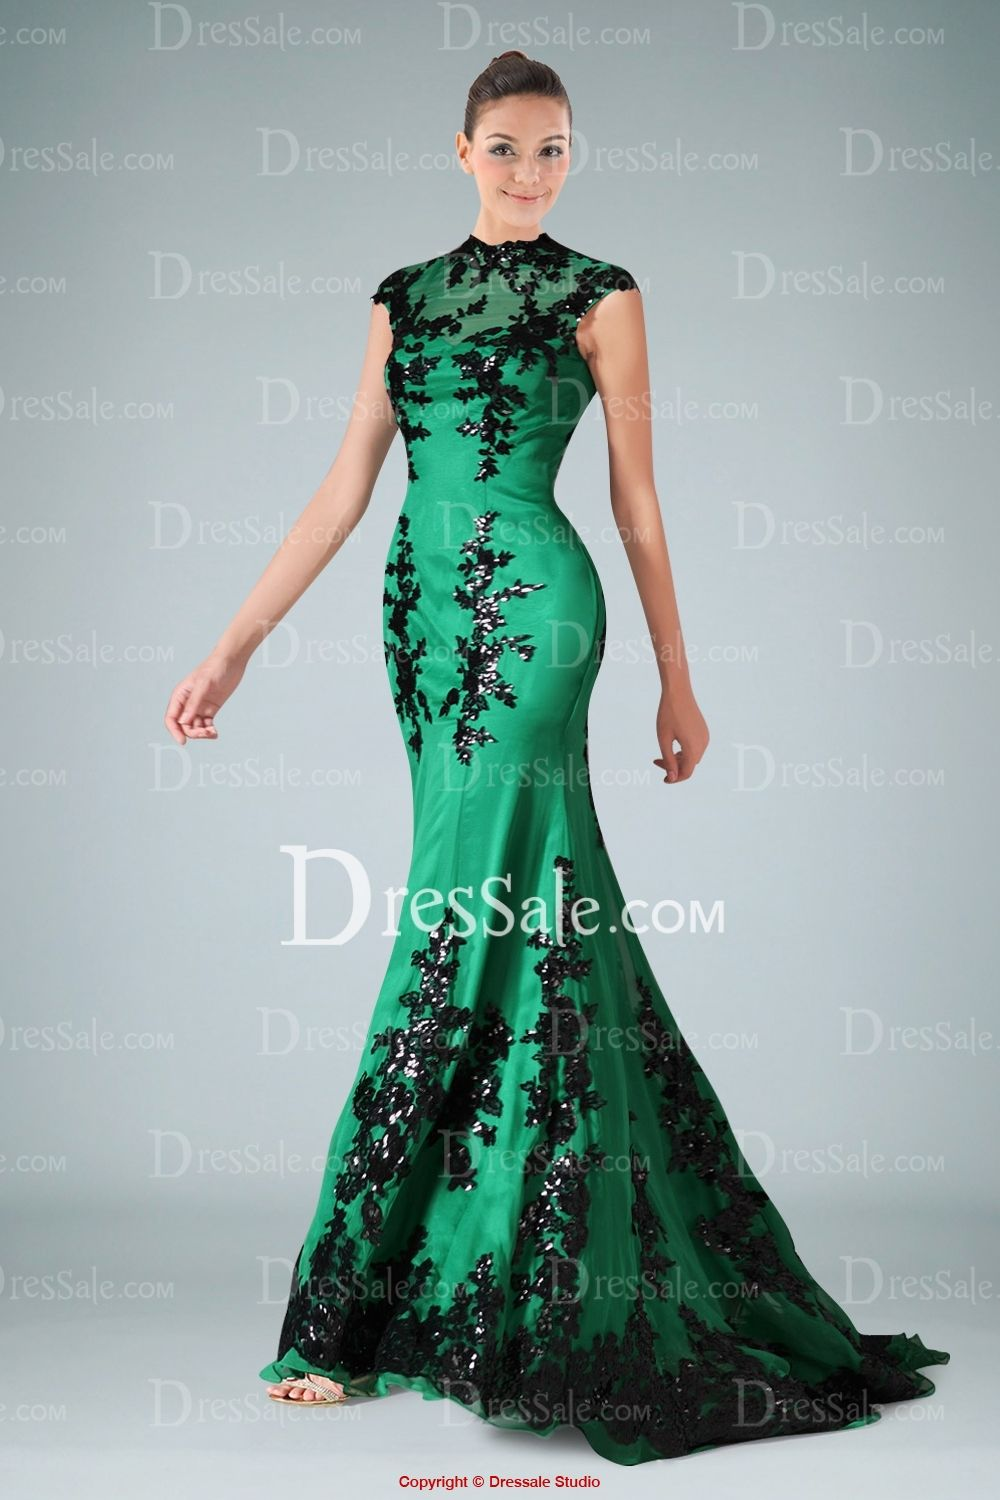 SUPER elegant. Normally don\'t like green OR \